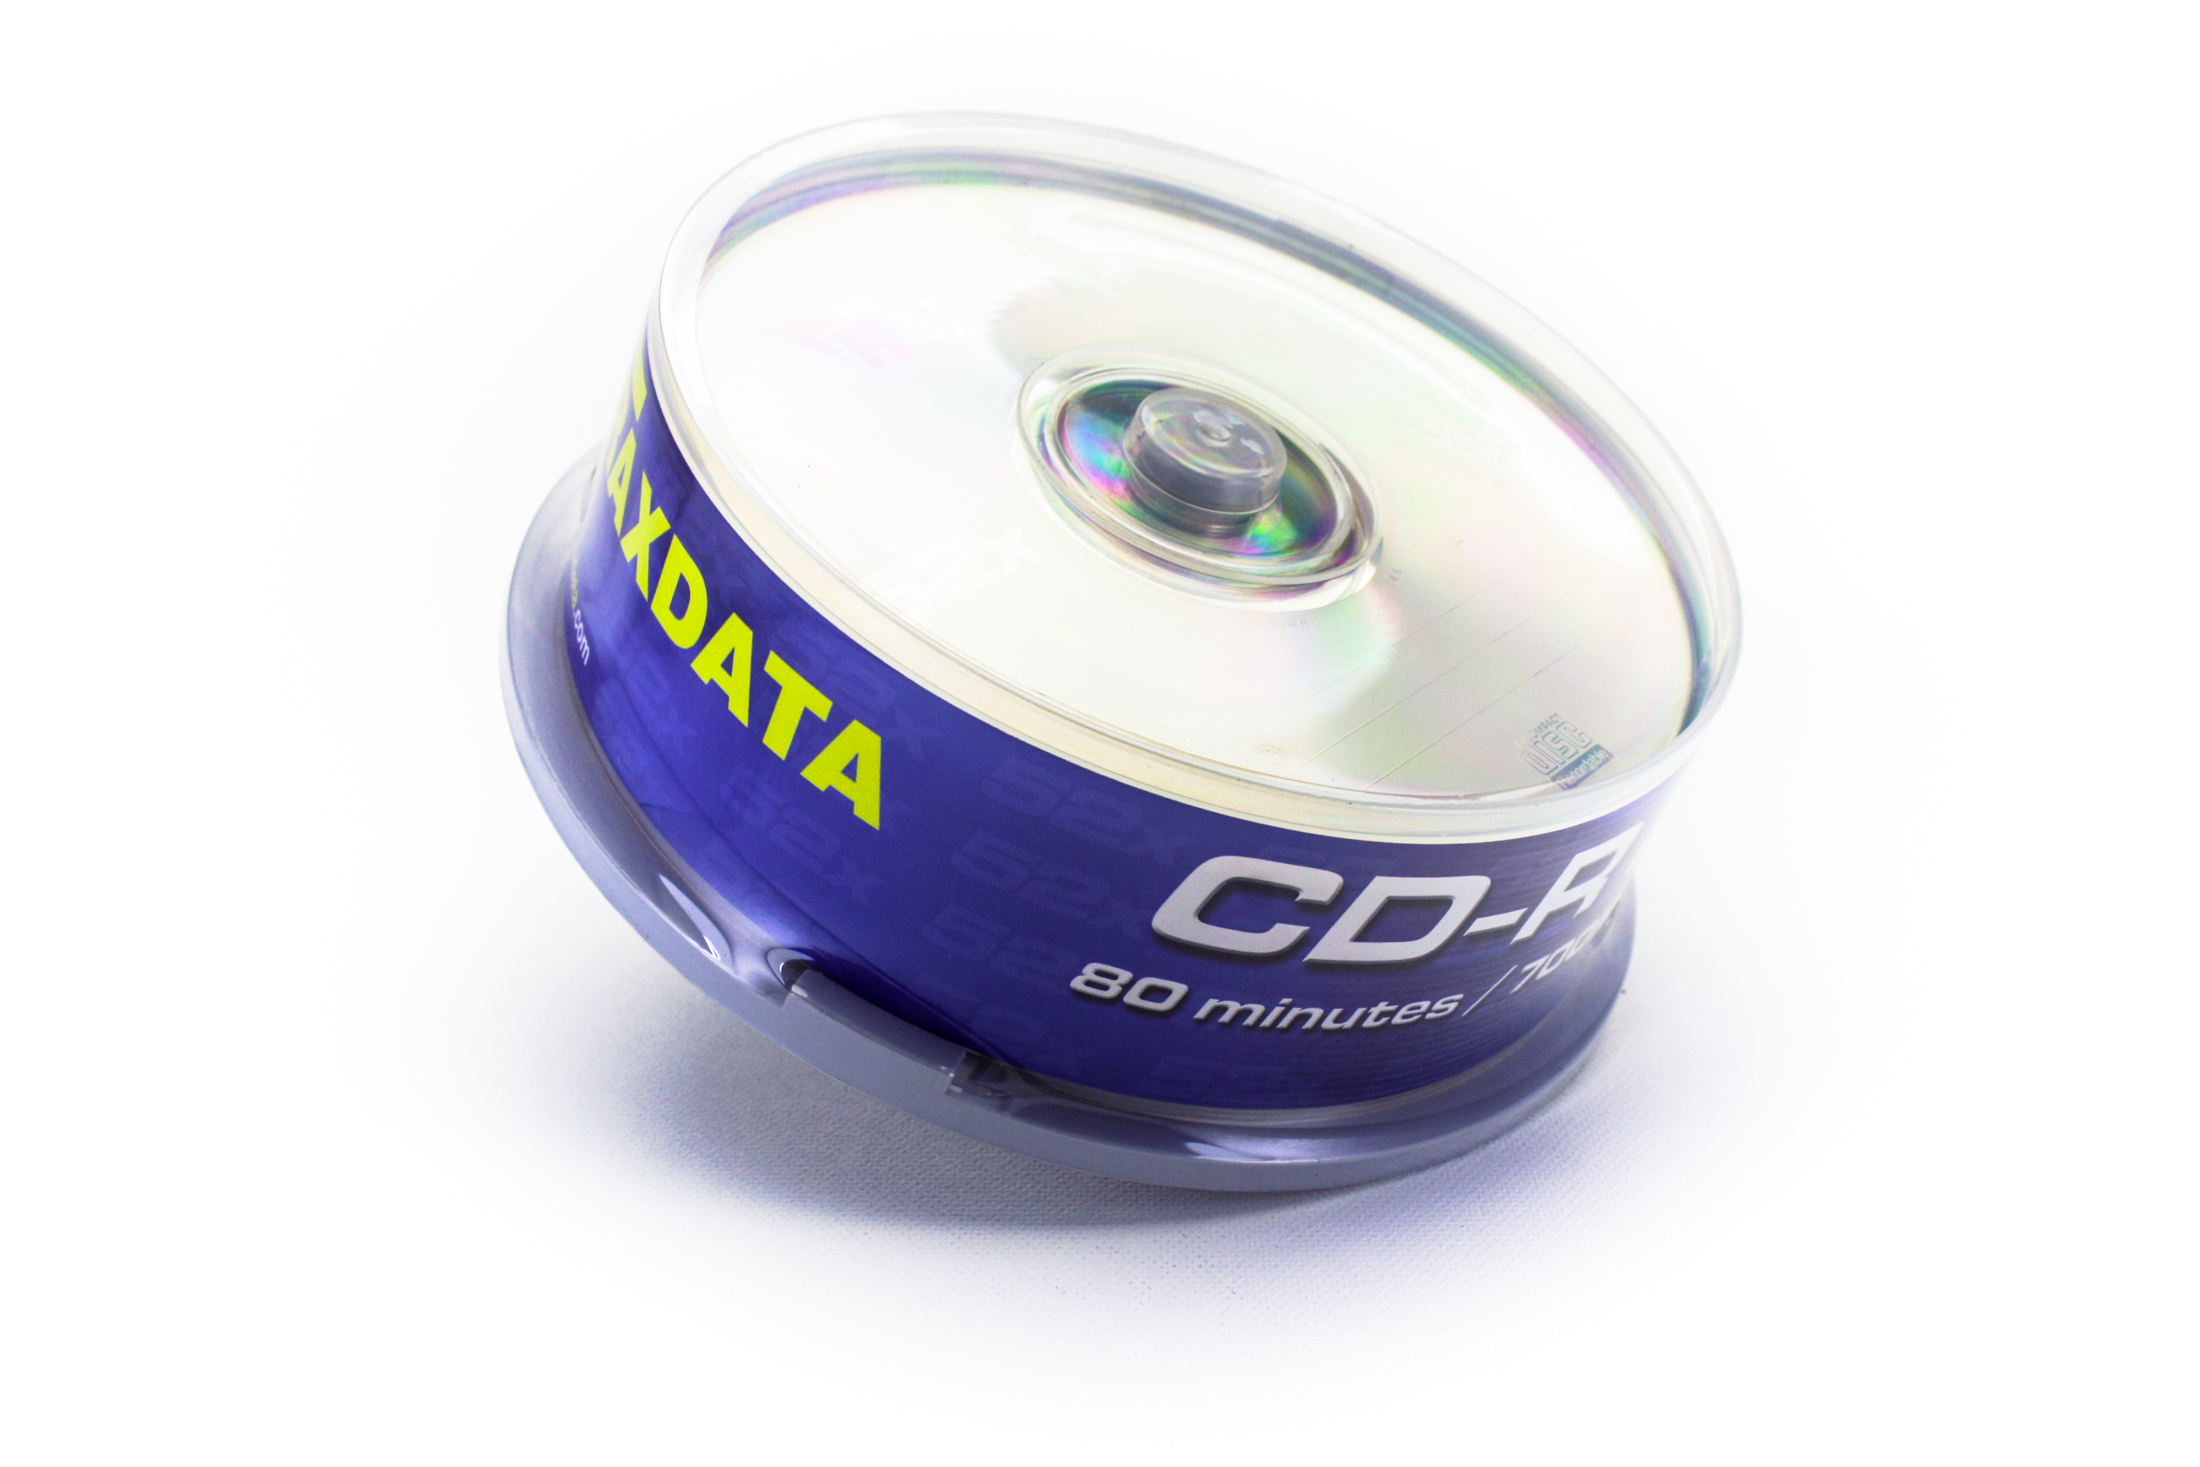 CD DVD diskete